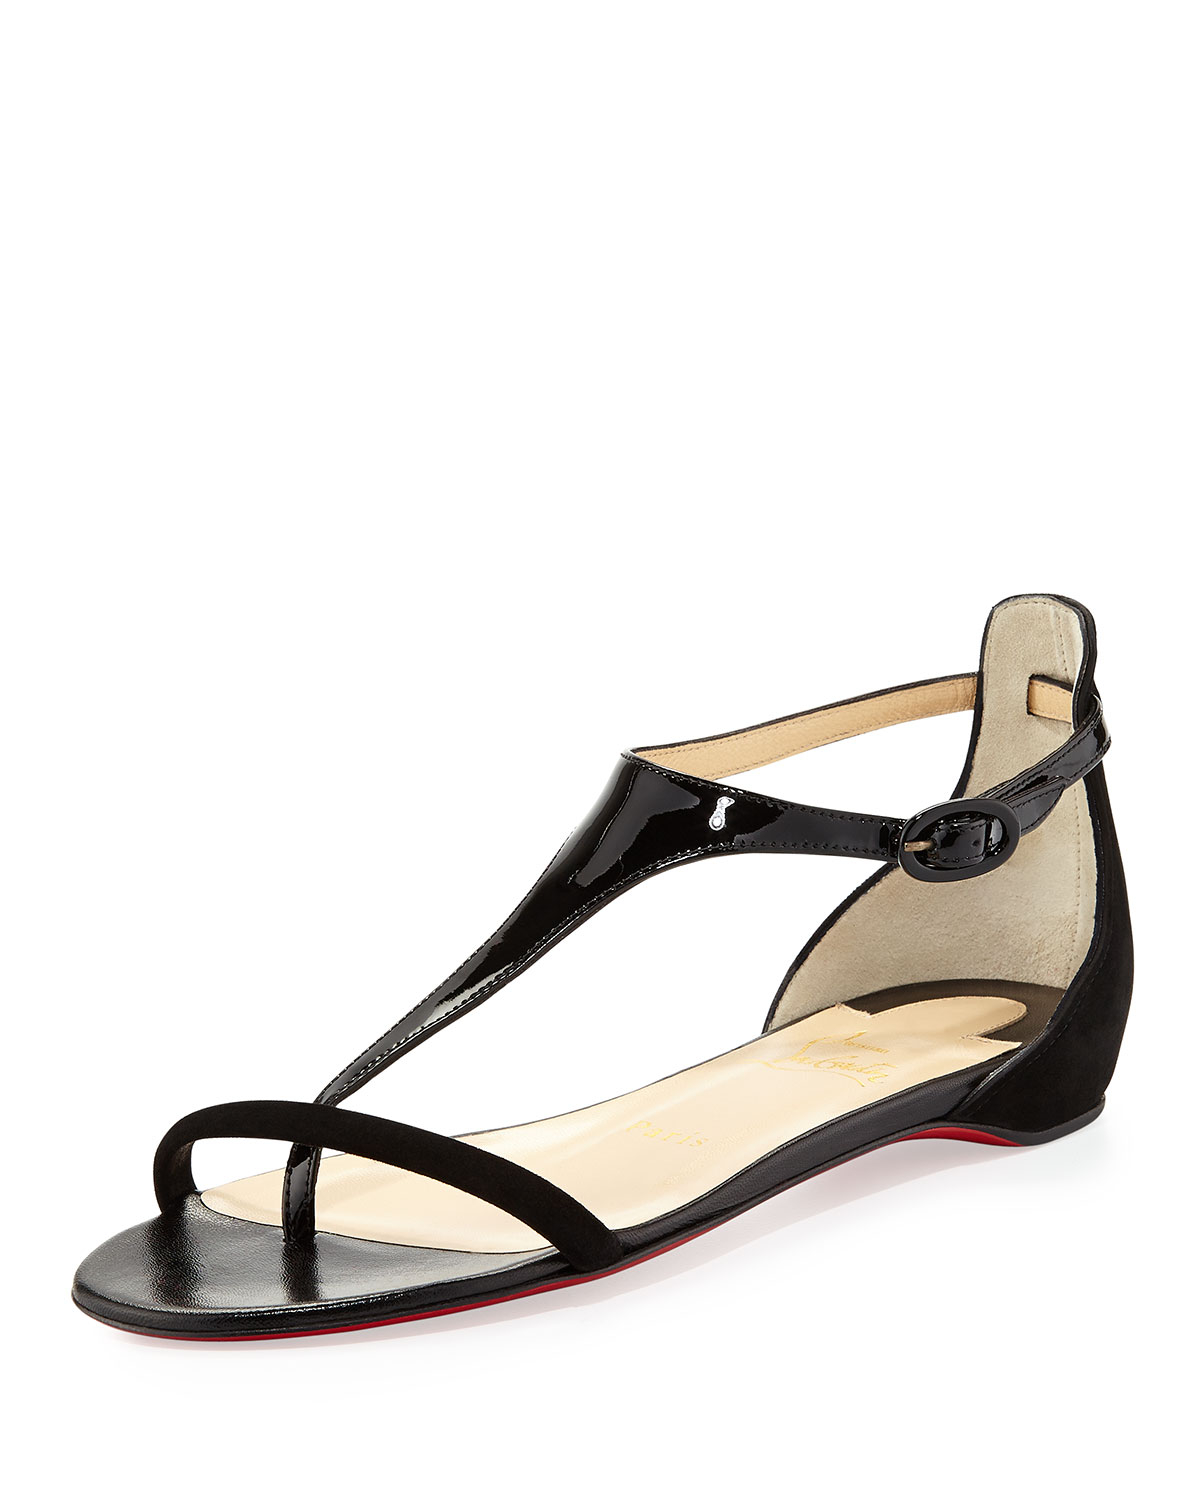 Lyst - Christian Louboutin Athena Patent Suede Flat Sandal Black in ...